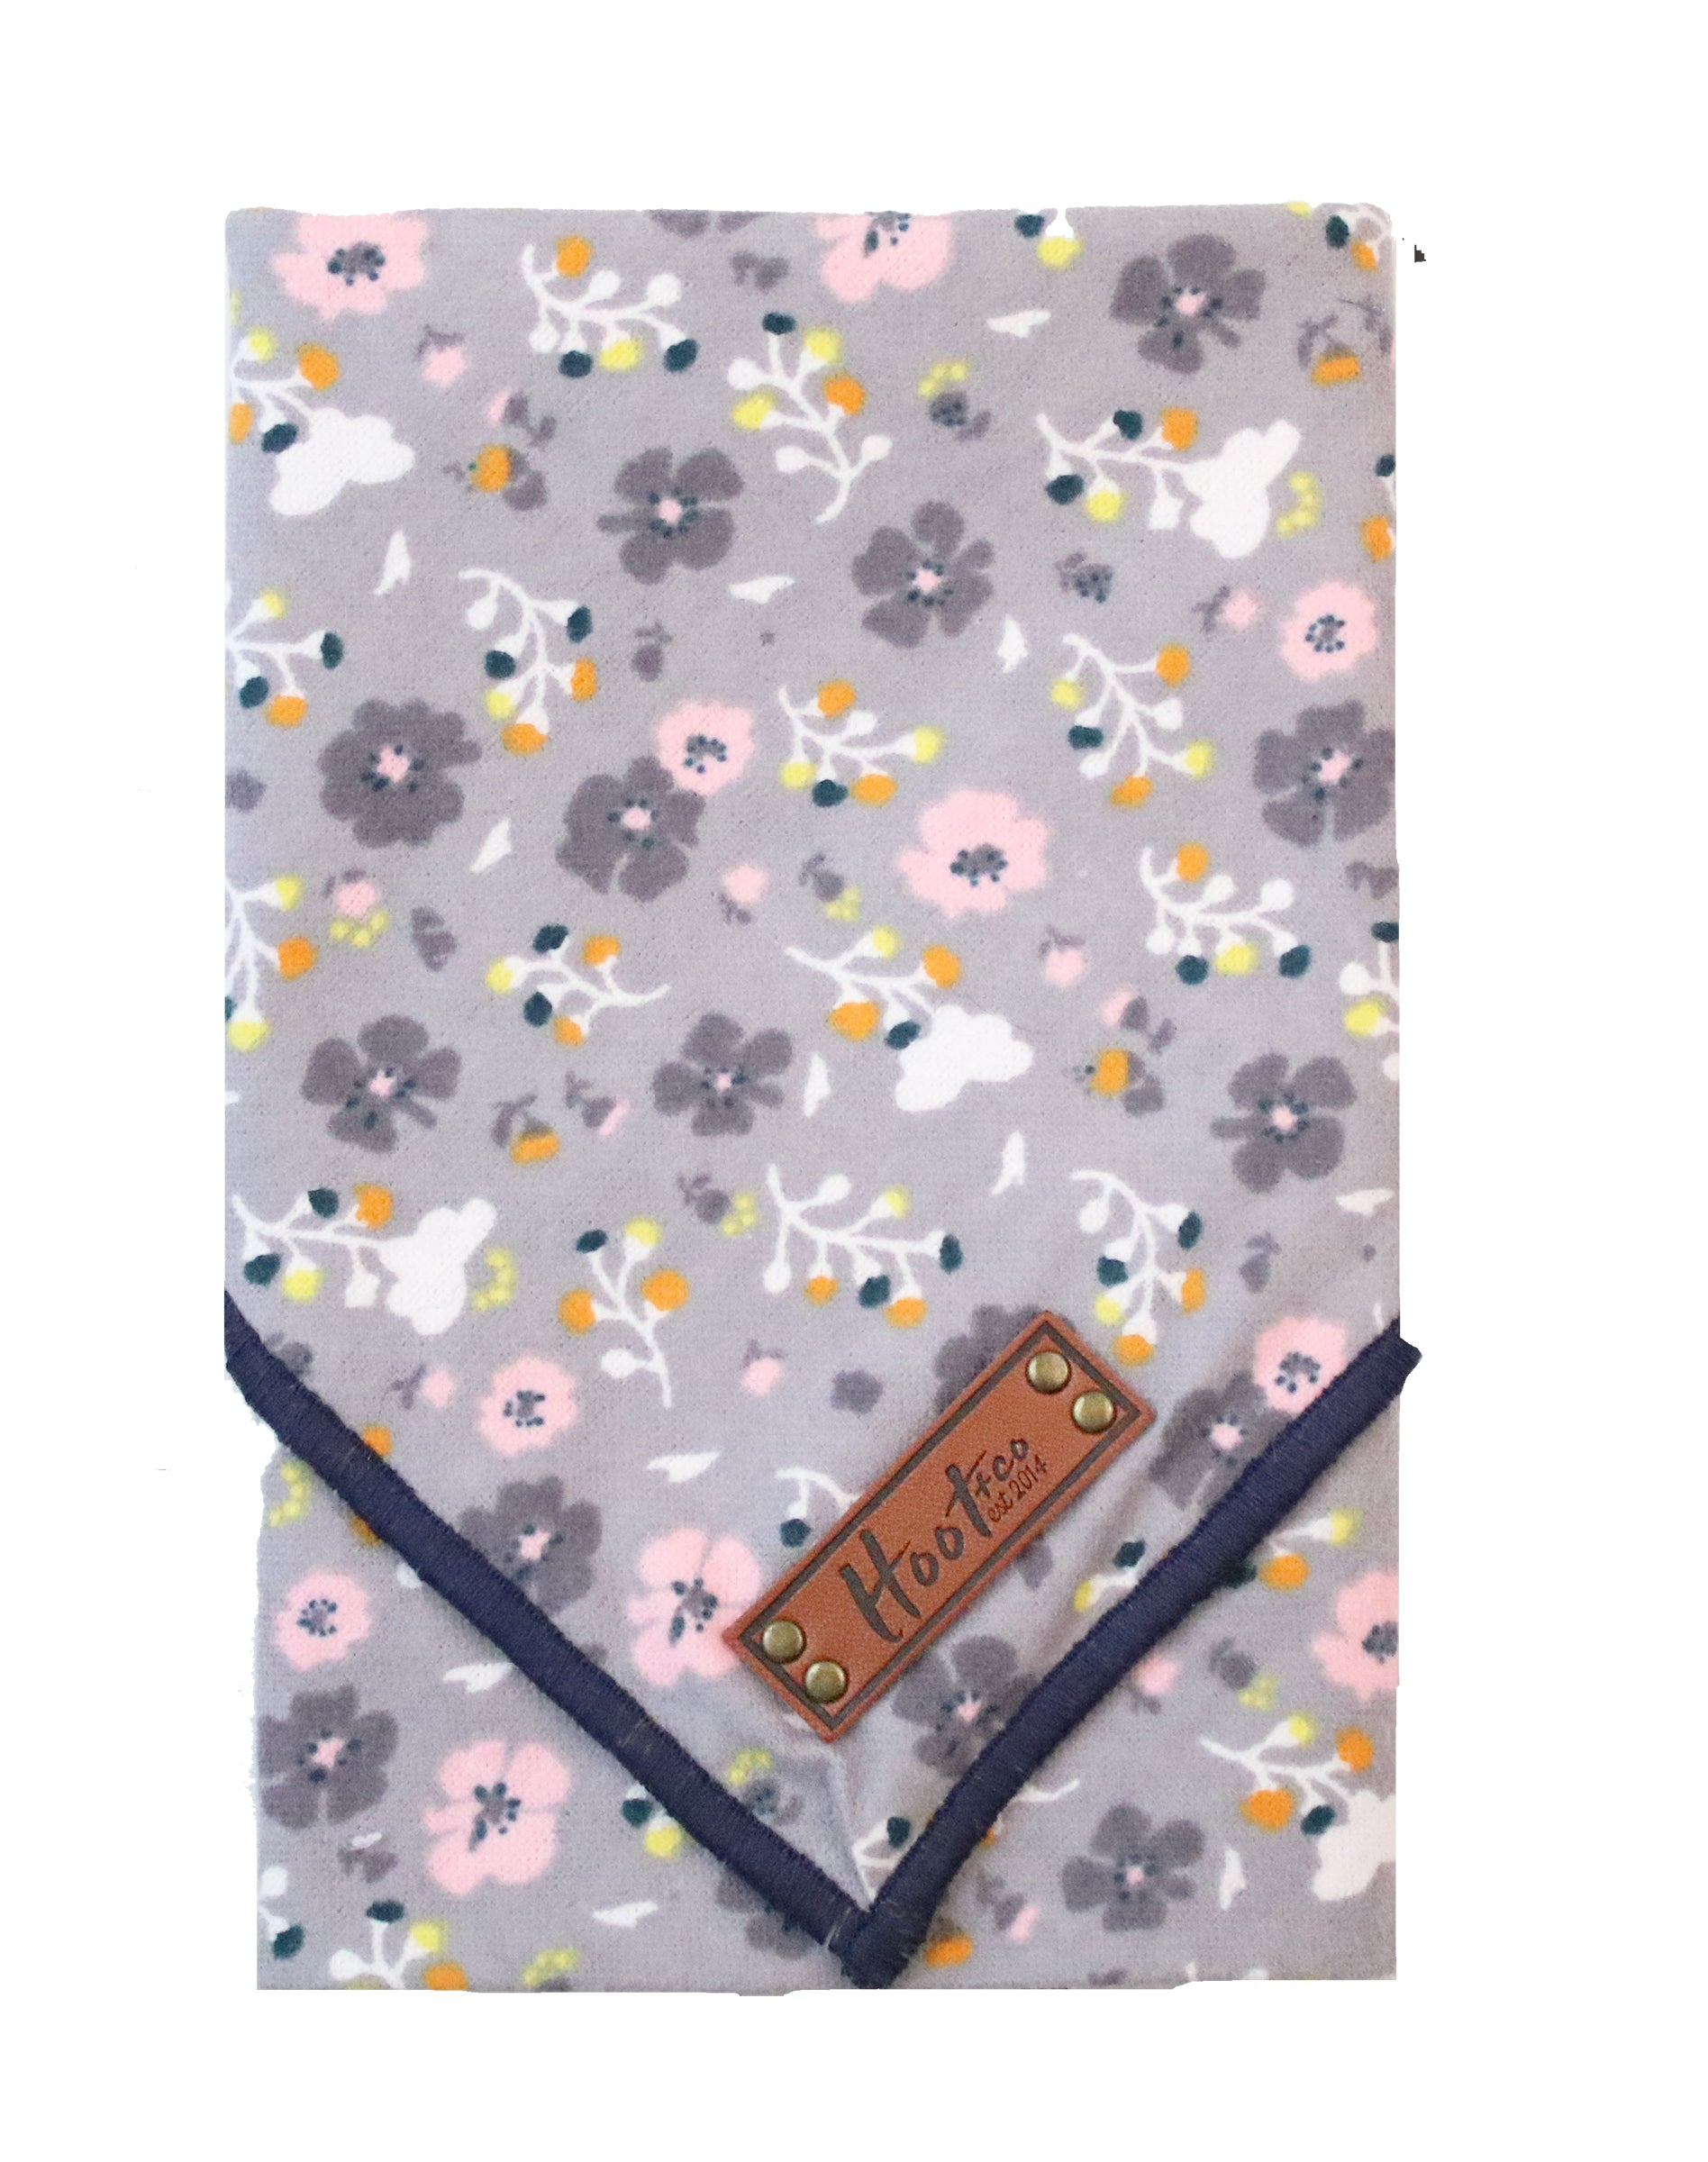 Poppy Floral Rolled Bandana - Gray